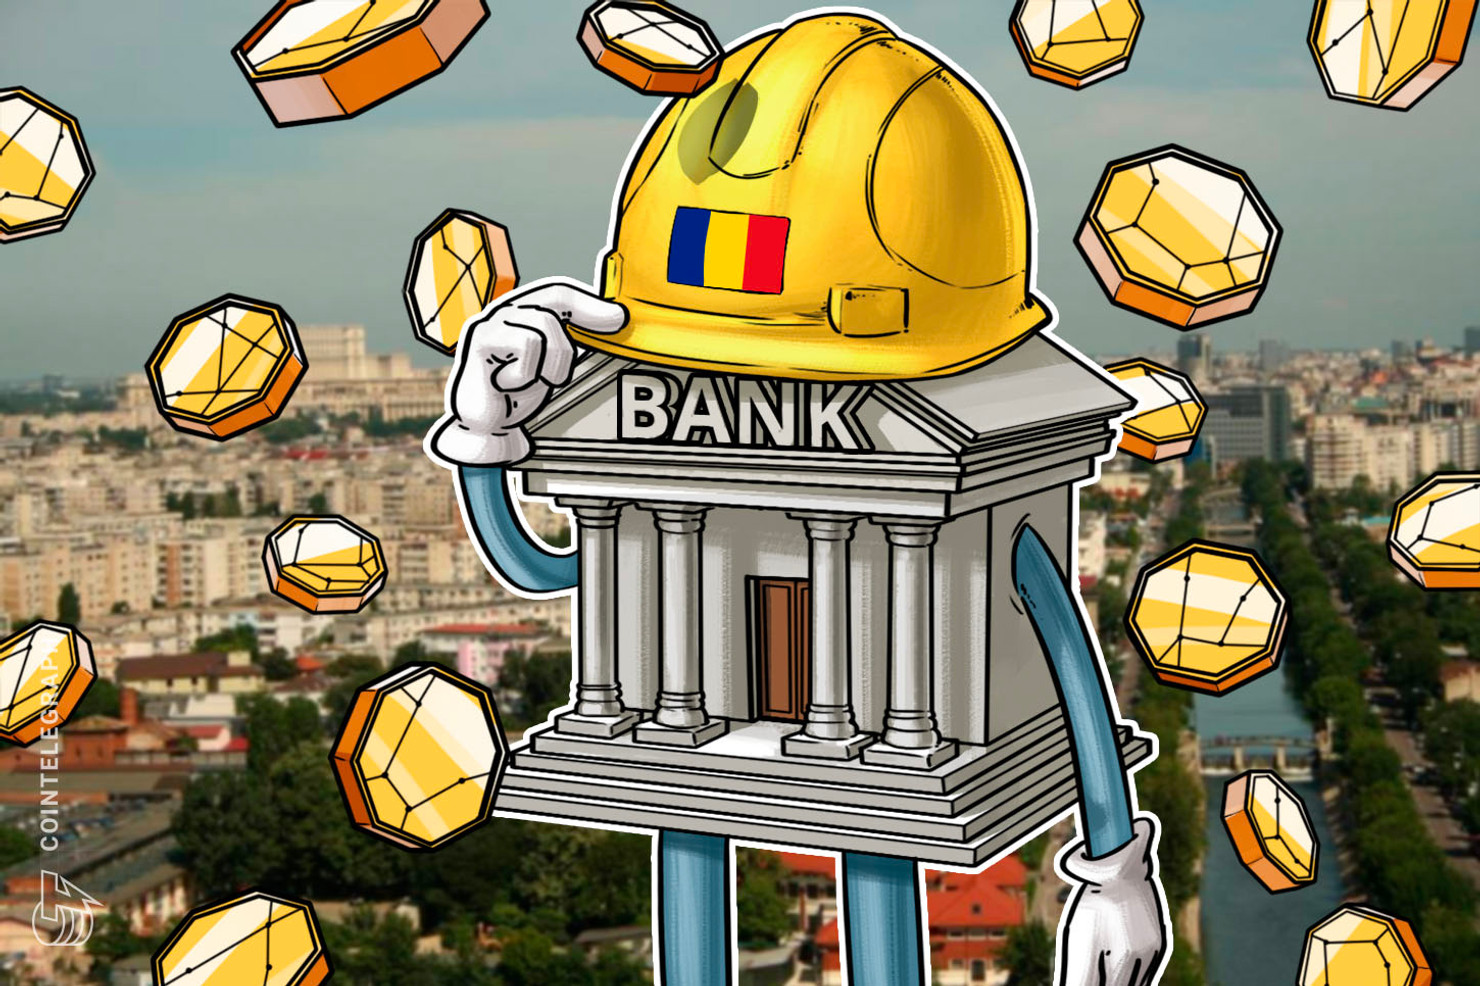 Romanian Central Bank Official Says Crypto Will Not Fulfil Basic Roles of Currency